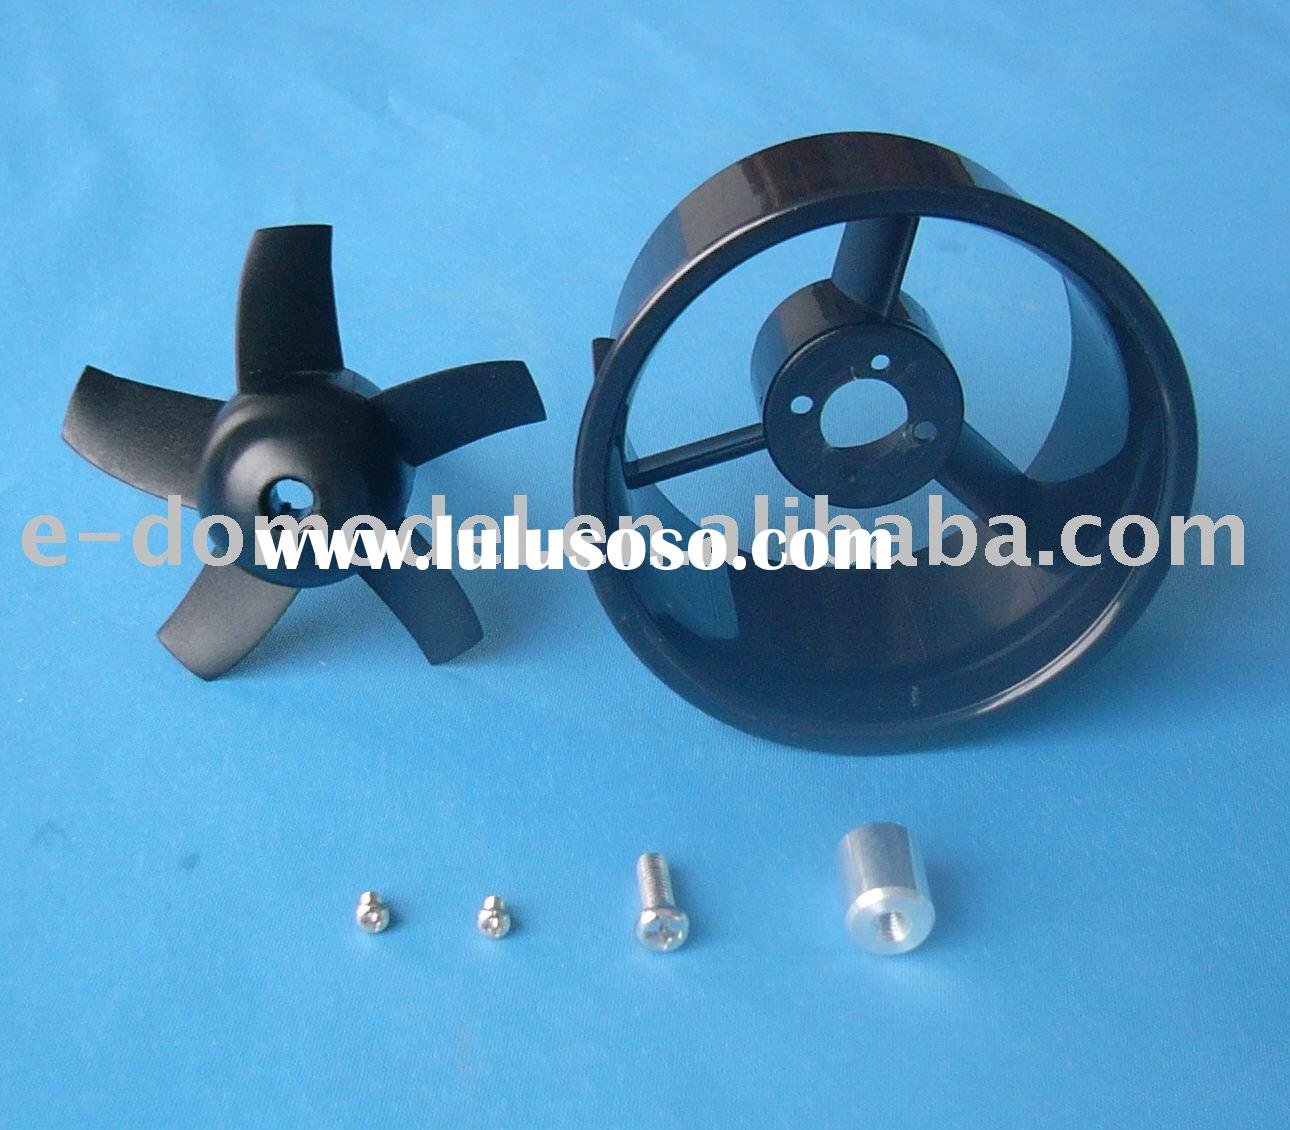 Rc toy accessory,Rc Jet parts ducted fan size:64mm